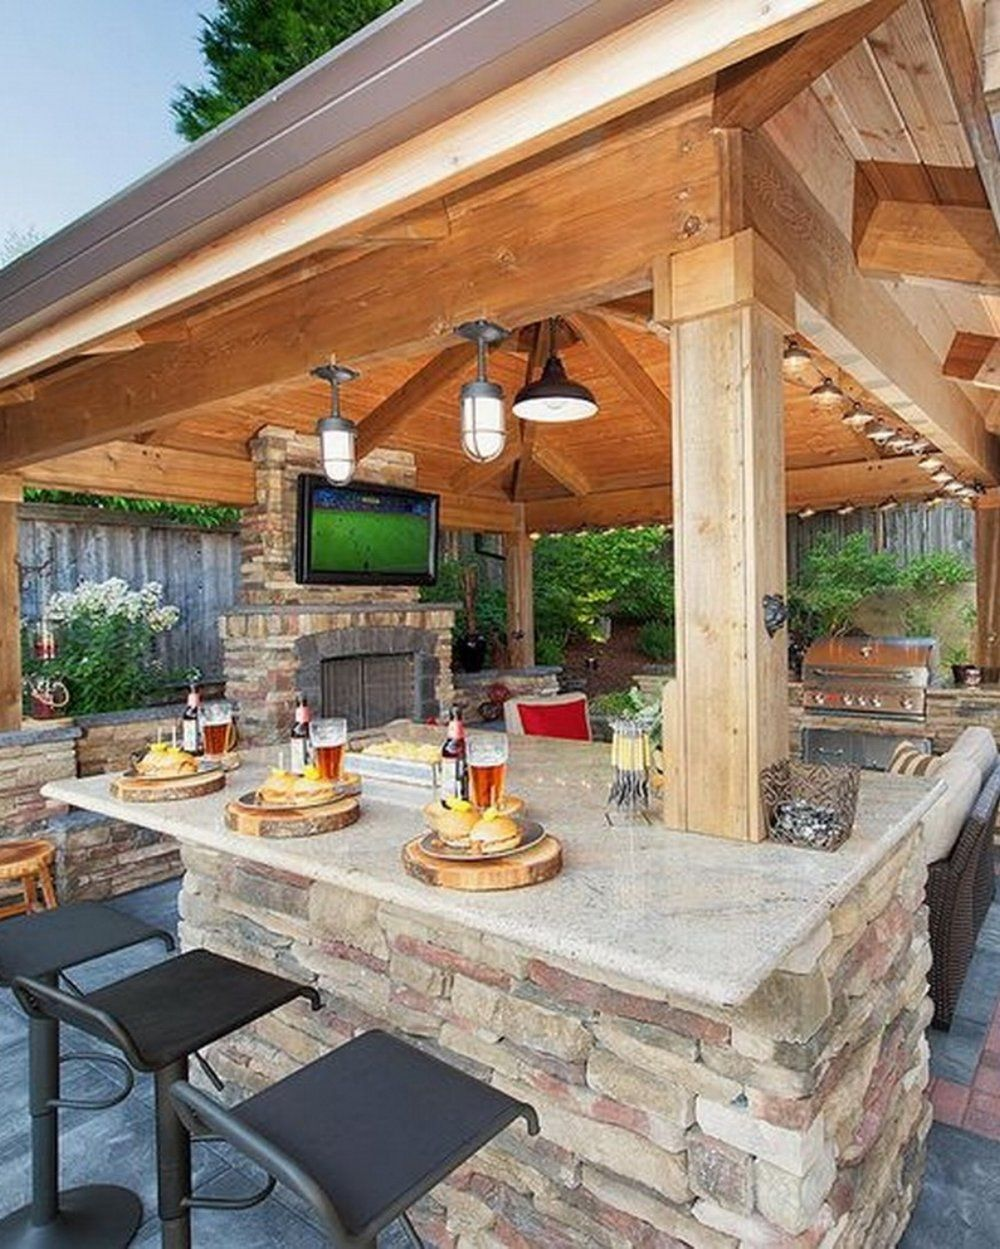 31 Gorgeous Outdoor Living Spaces | Dining, Living spaces and ...